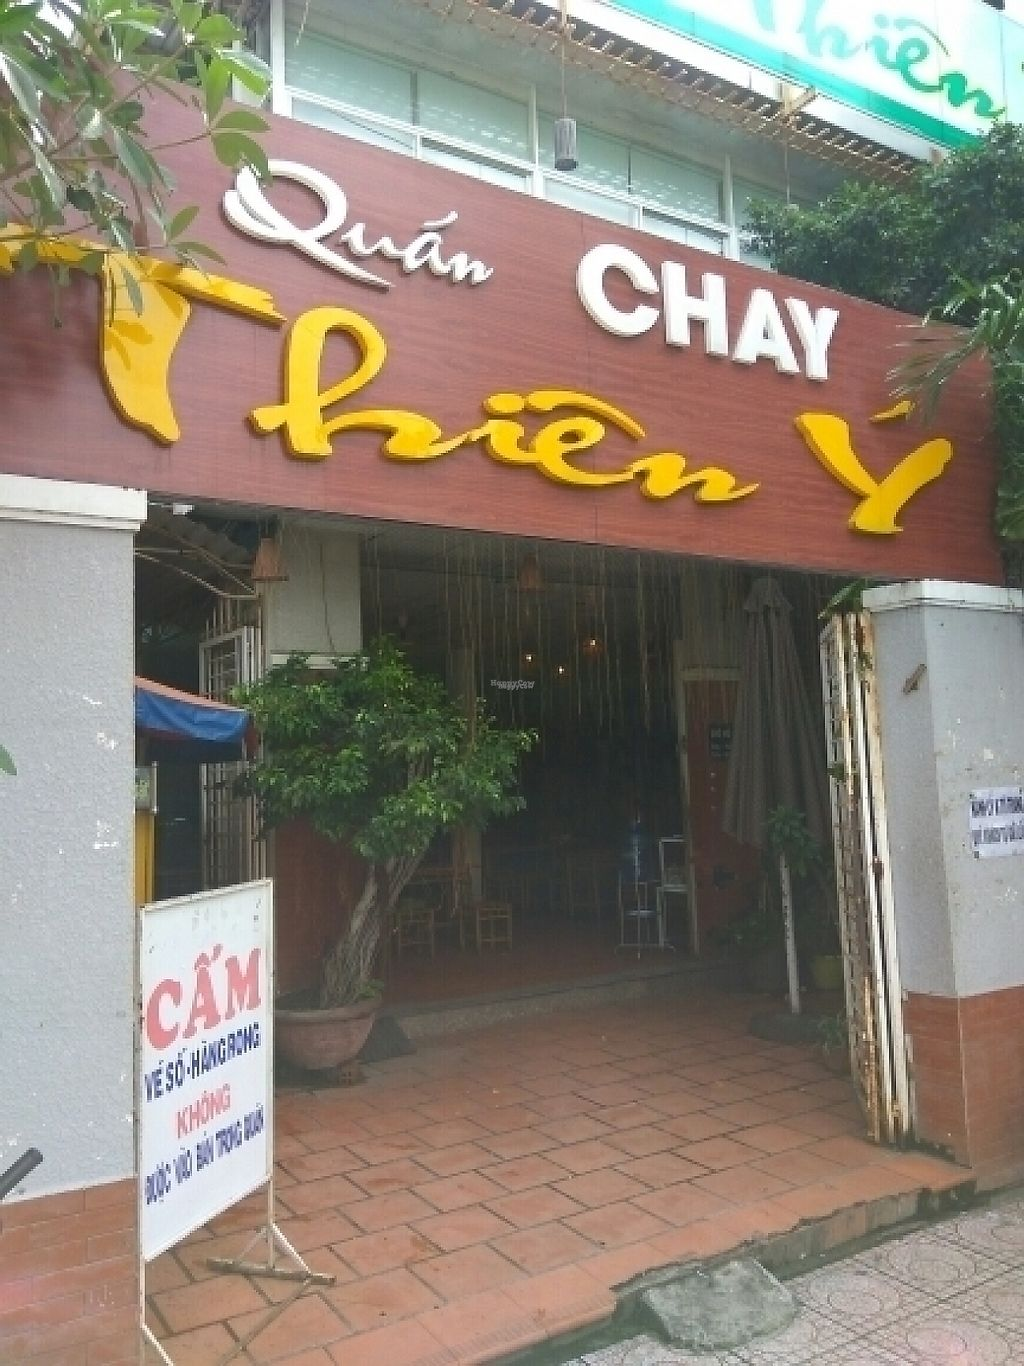 "Photo of Nha Hang Chay Thien y  by <a href=""/members/profile/MrGee"">MrGee</a> <br/>restaurant entrance  <br/> November 17, 2016  - <a href='/contact/abuse/image/54284/191155'>Report</a>"